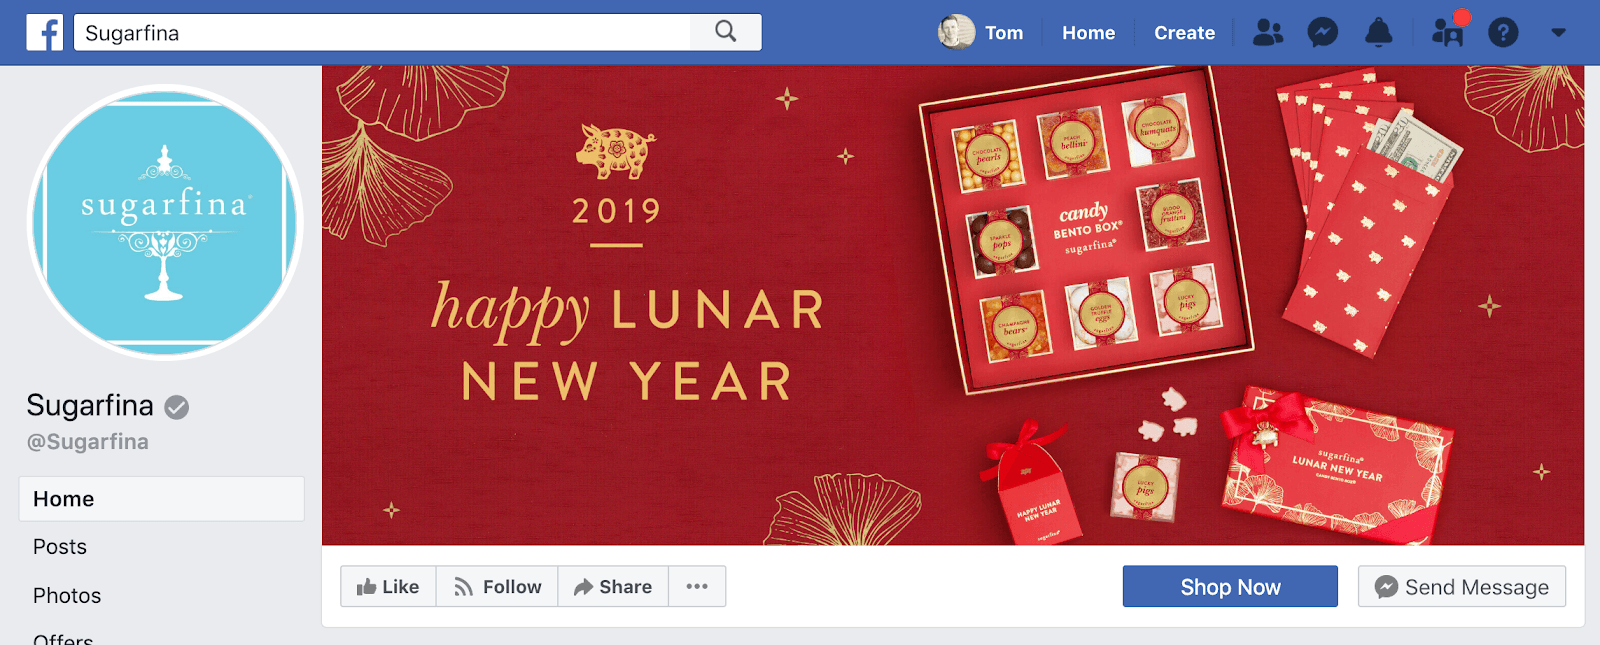 New Years Marketing Ideas facebook cover